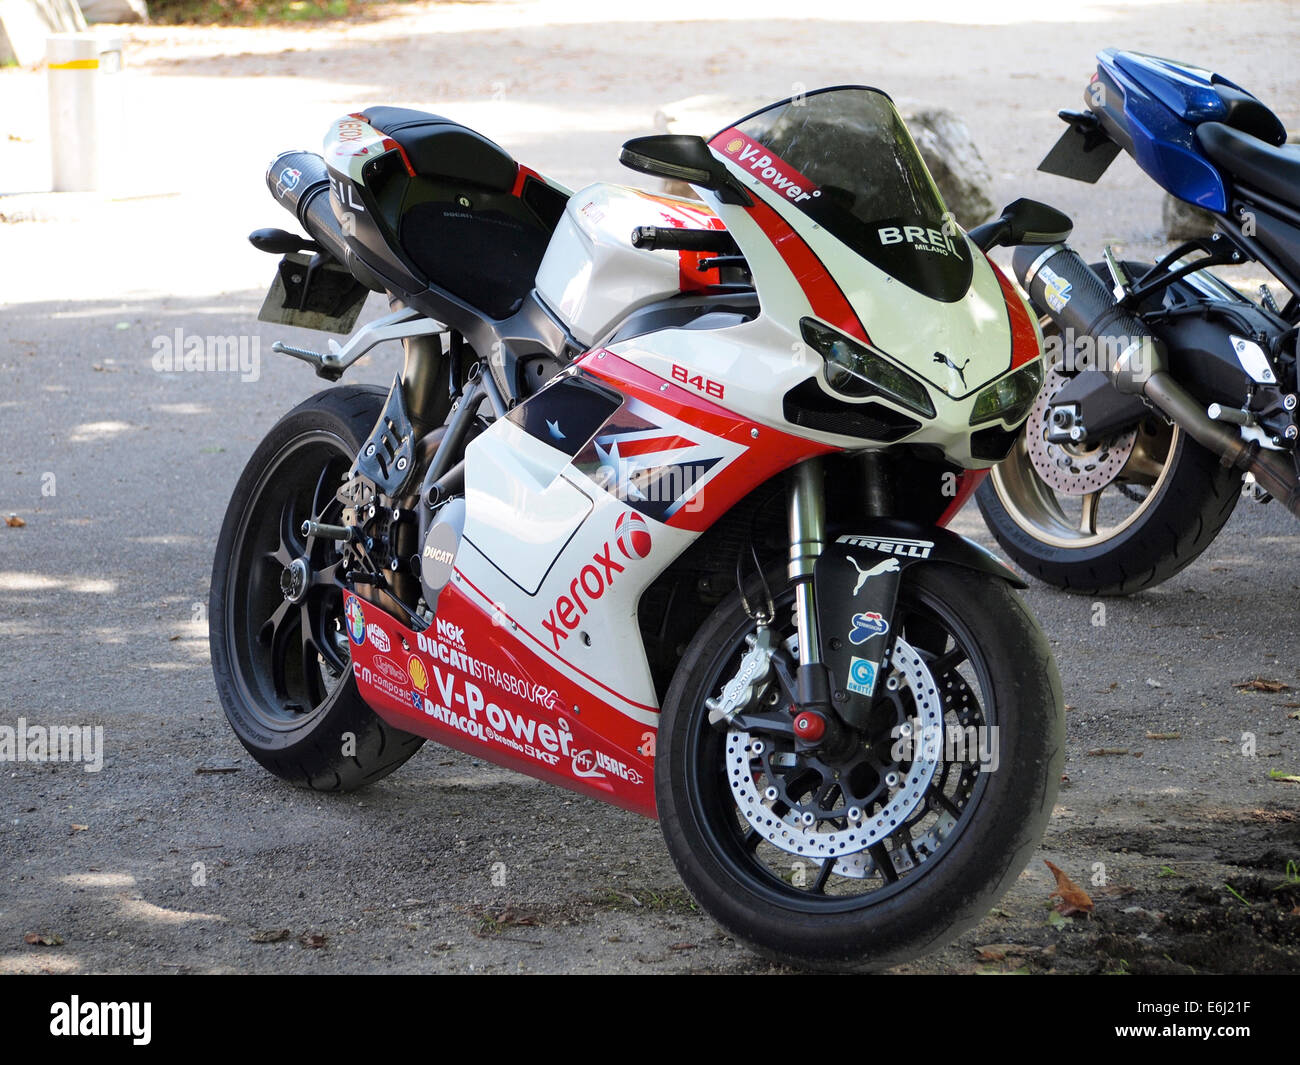 Ducati 848 sports motorcycle parked - Stock Image